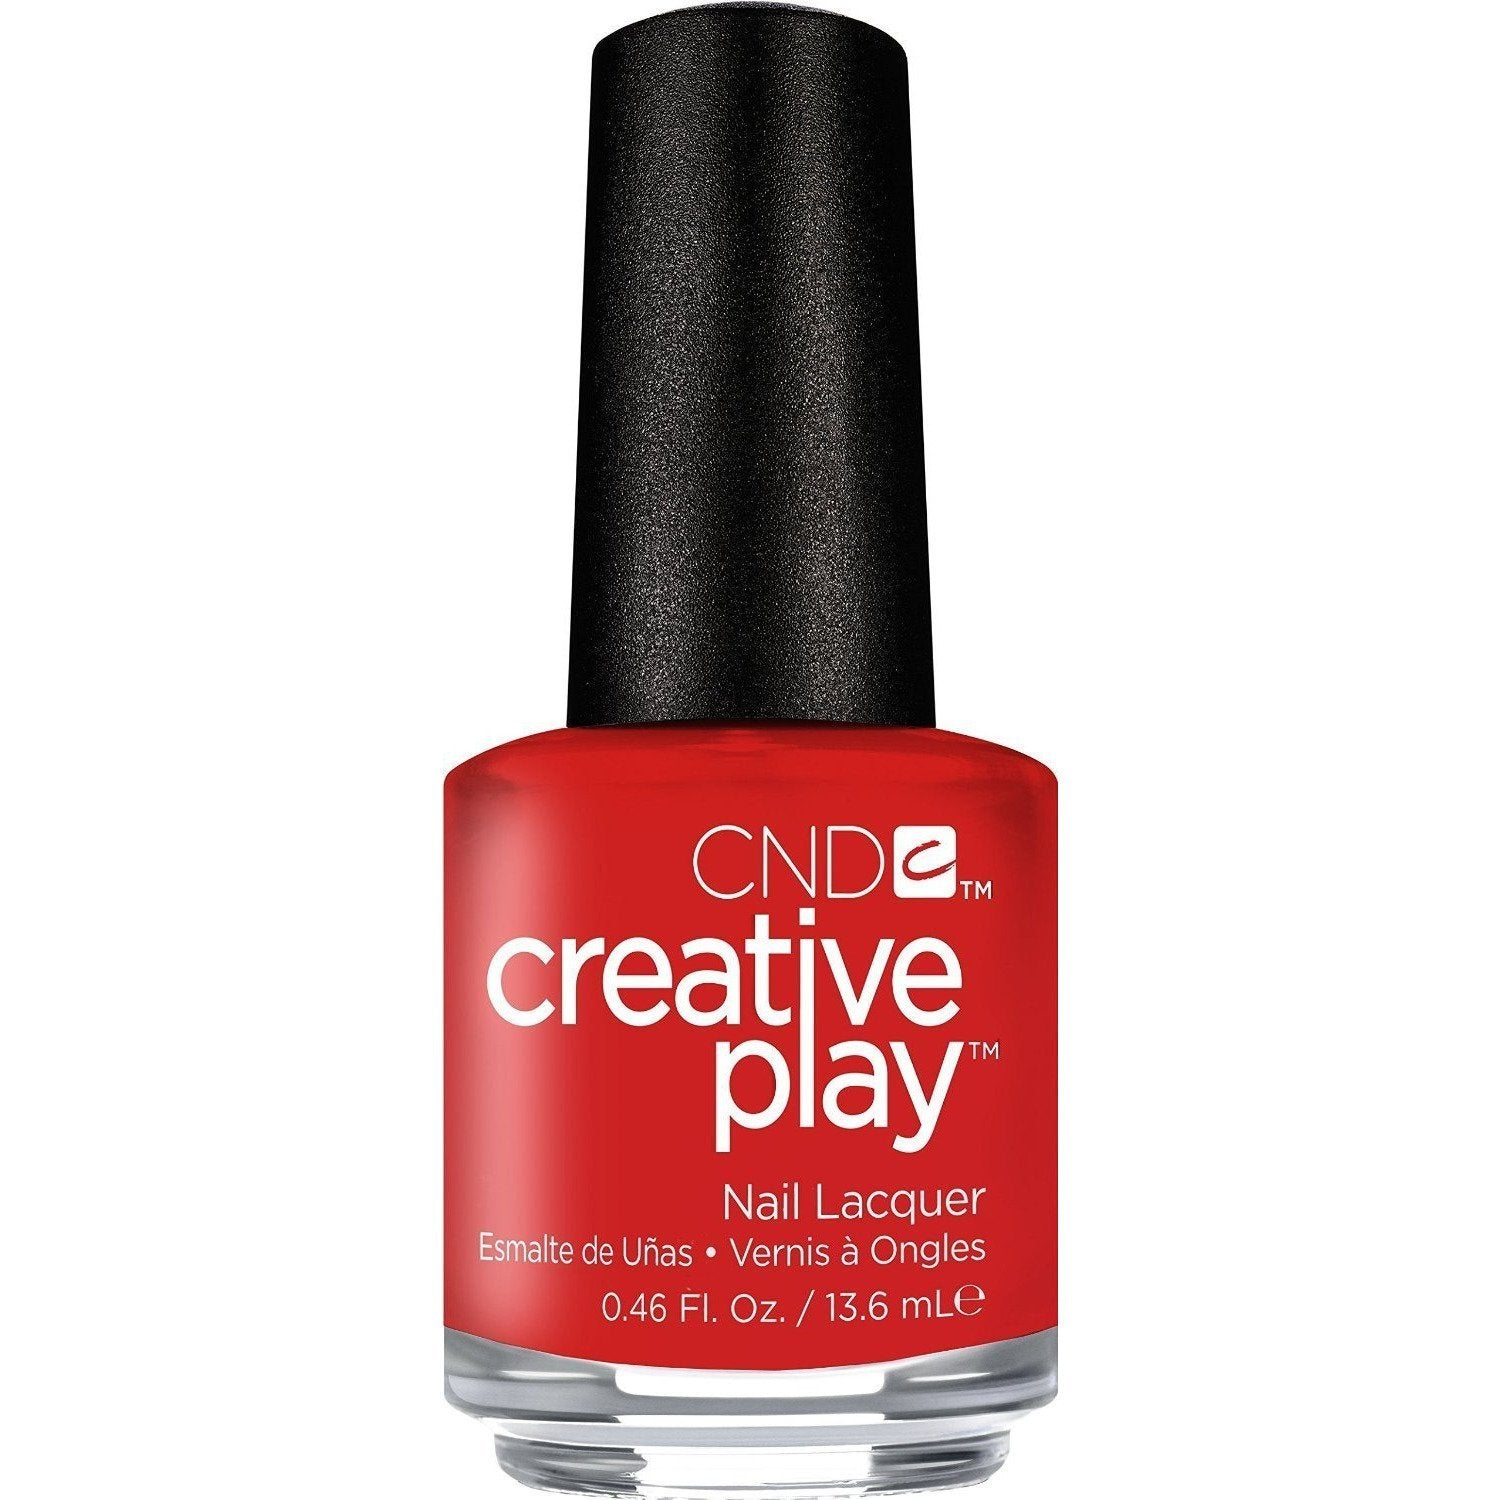 CND Creative Play Nail Polish - On A Dare | CND - CM Nails & Beauty Supply